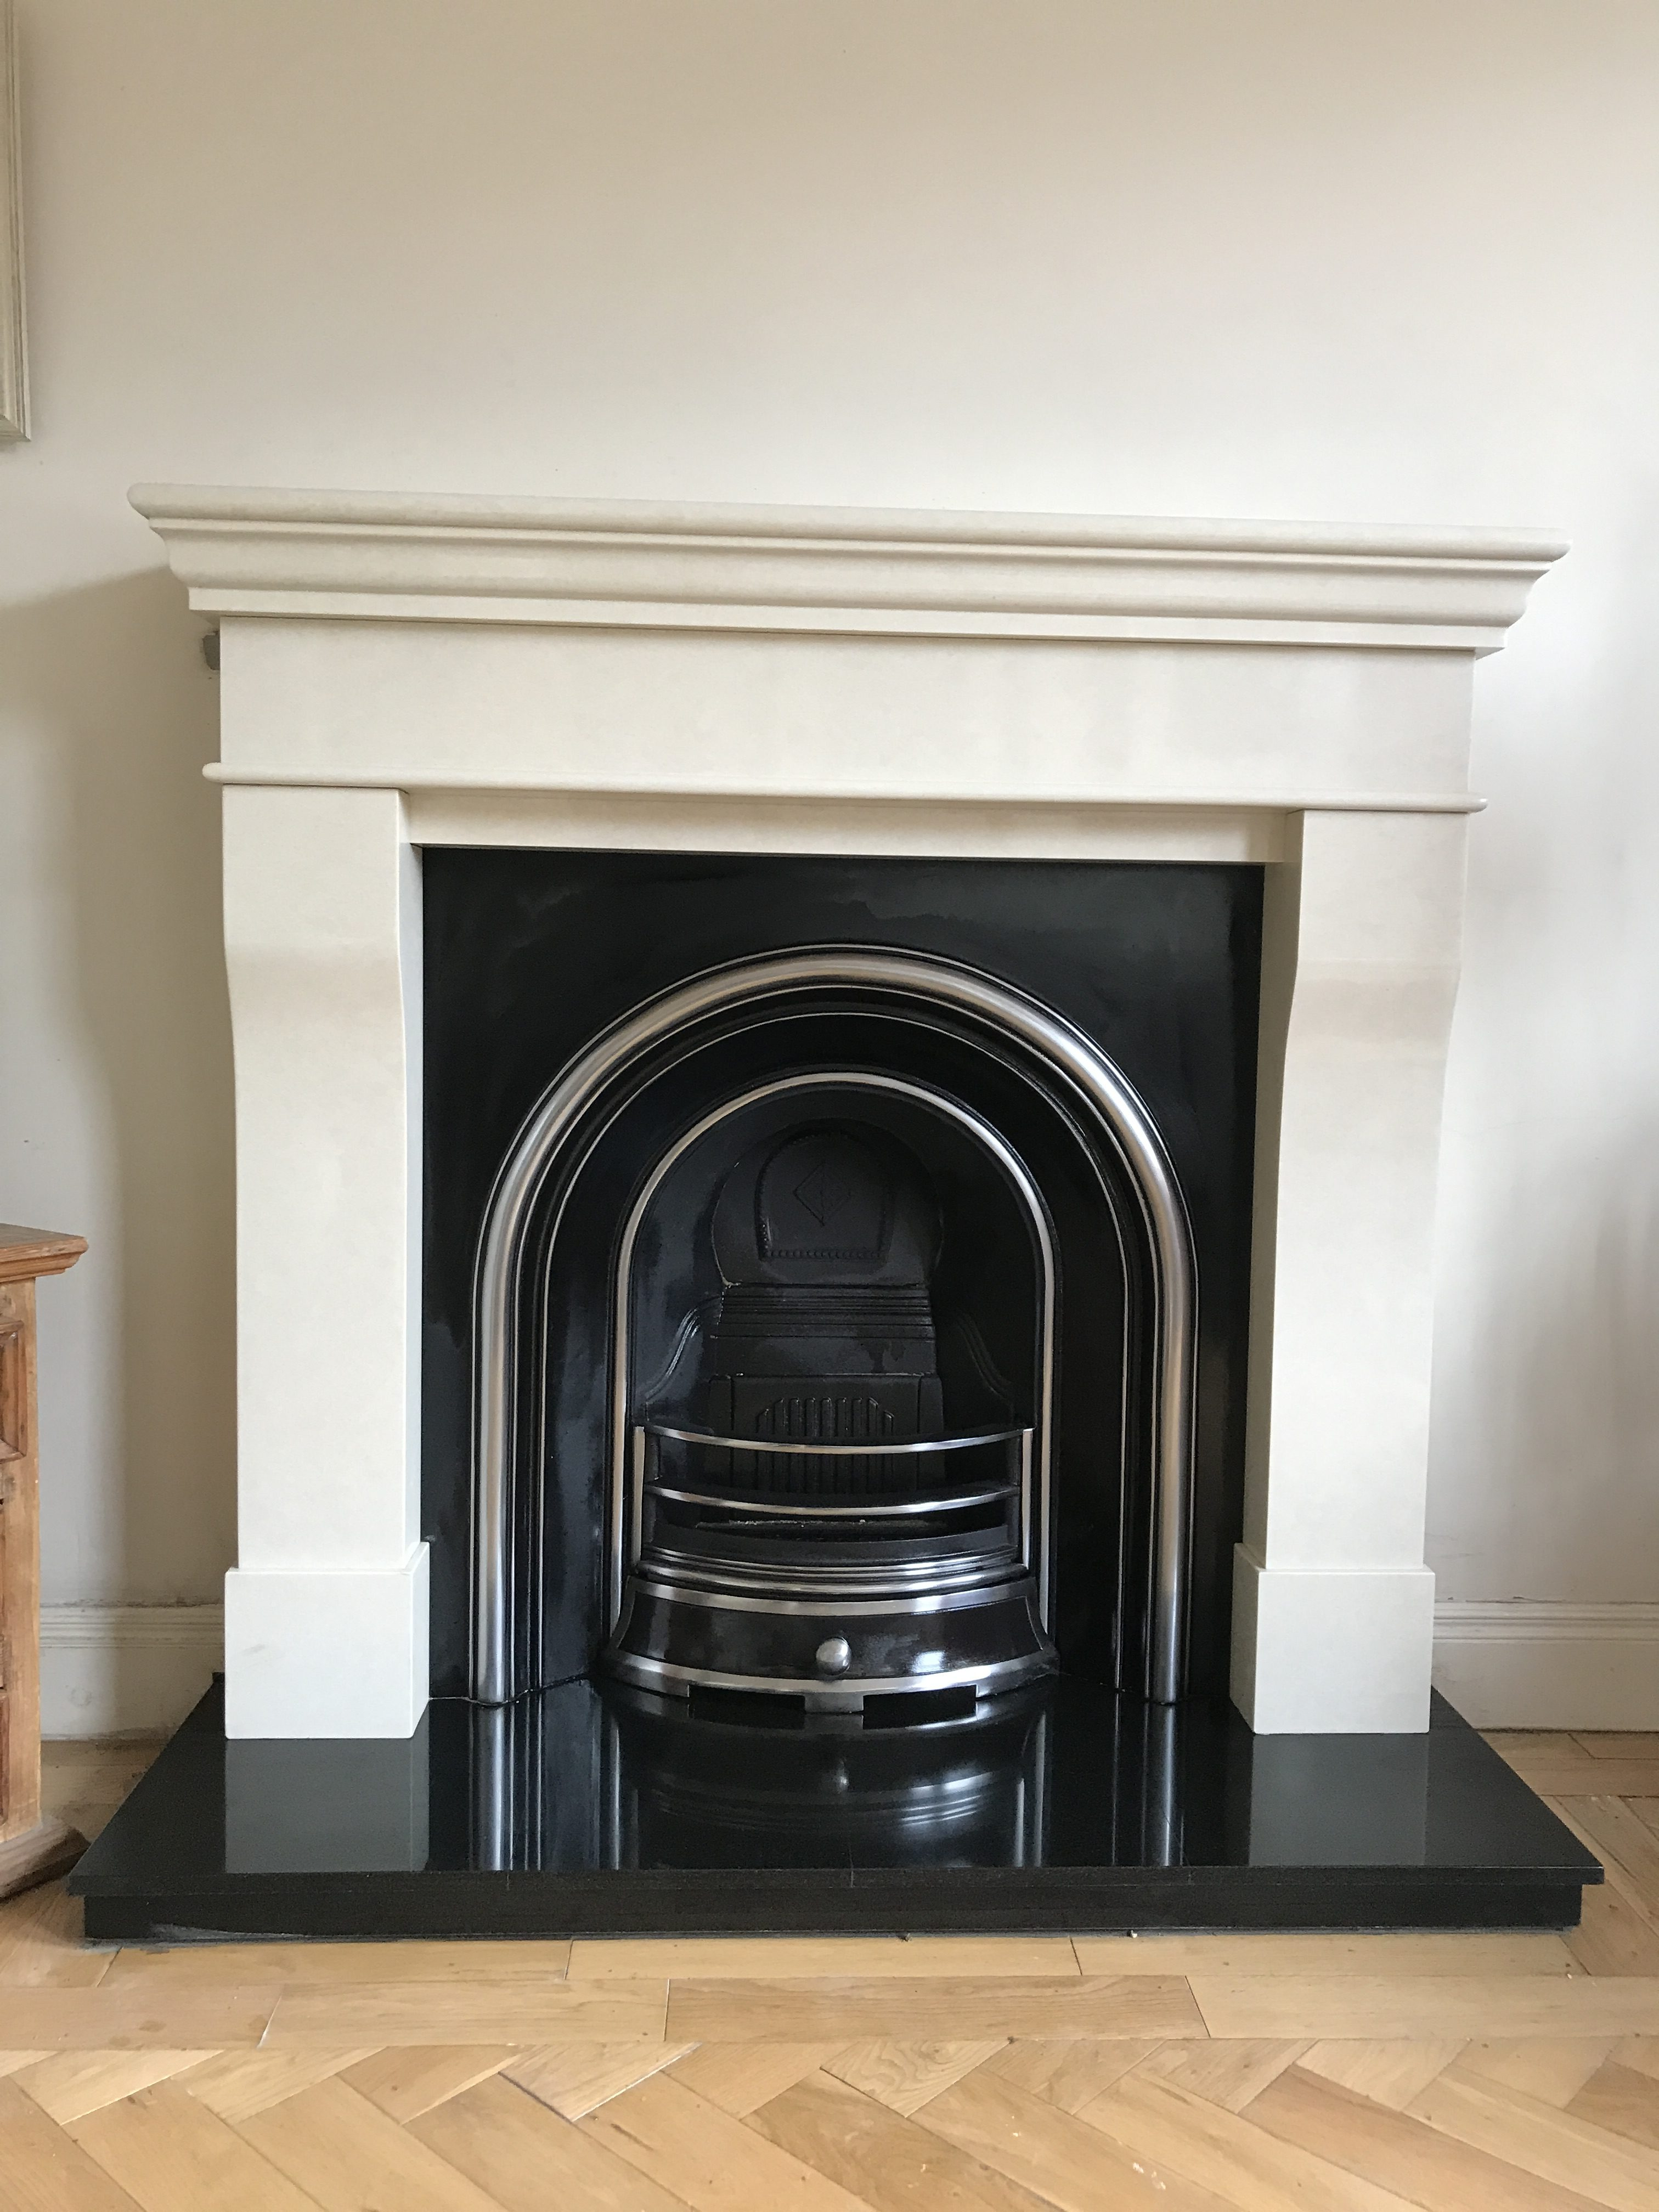 Incredible Removing Marble Fireplace Surround Fireplace Ideas Download Free Architecture Designs Scobabritishbridgeorg